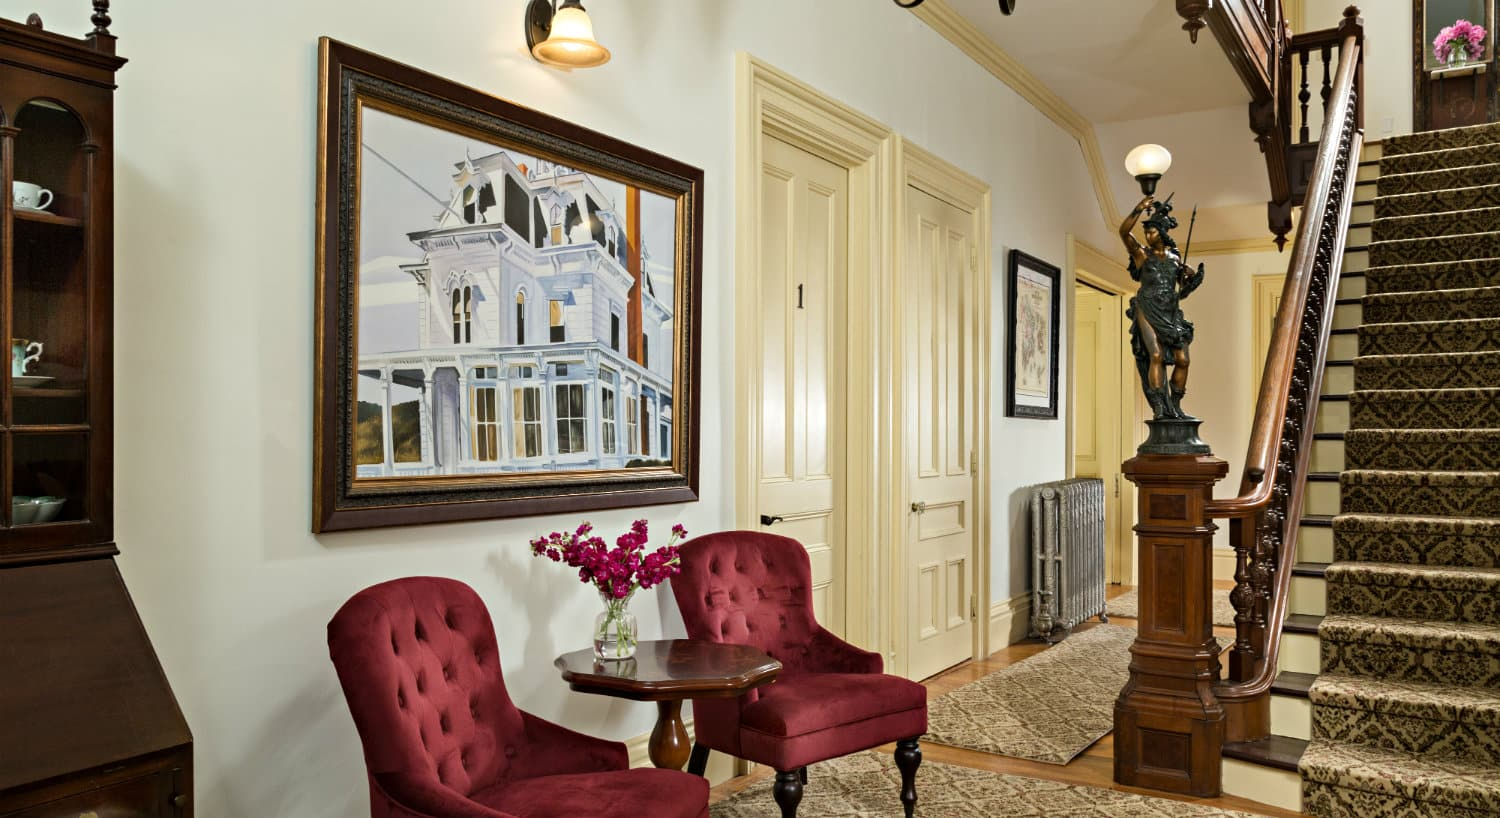 Foyer area with two ruby velvet chairs and a tall staircase rising to the second floor.